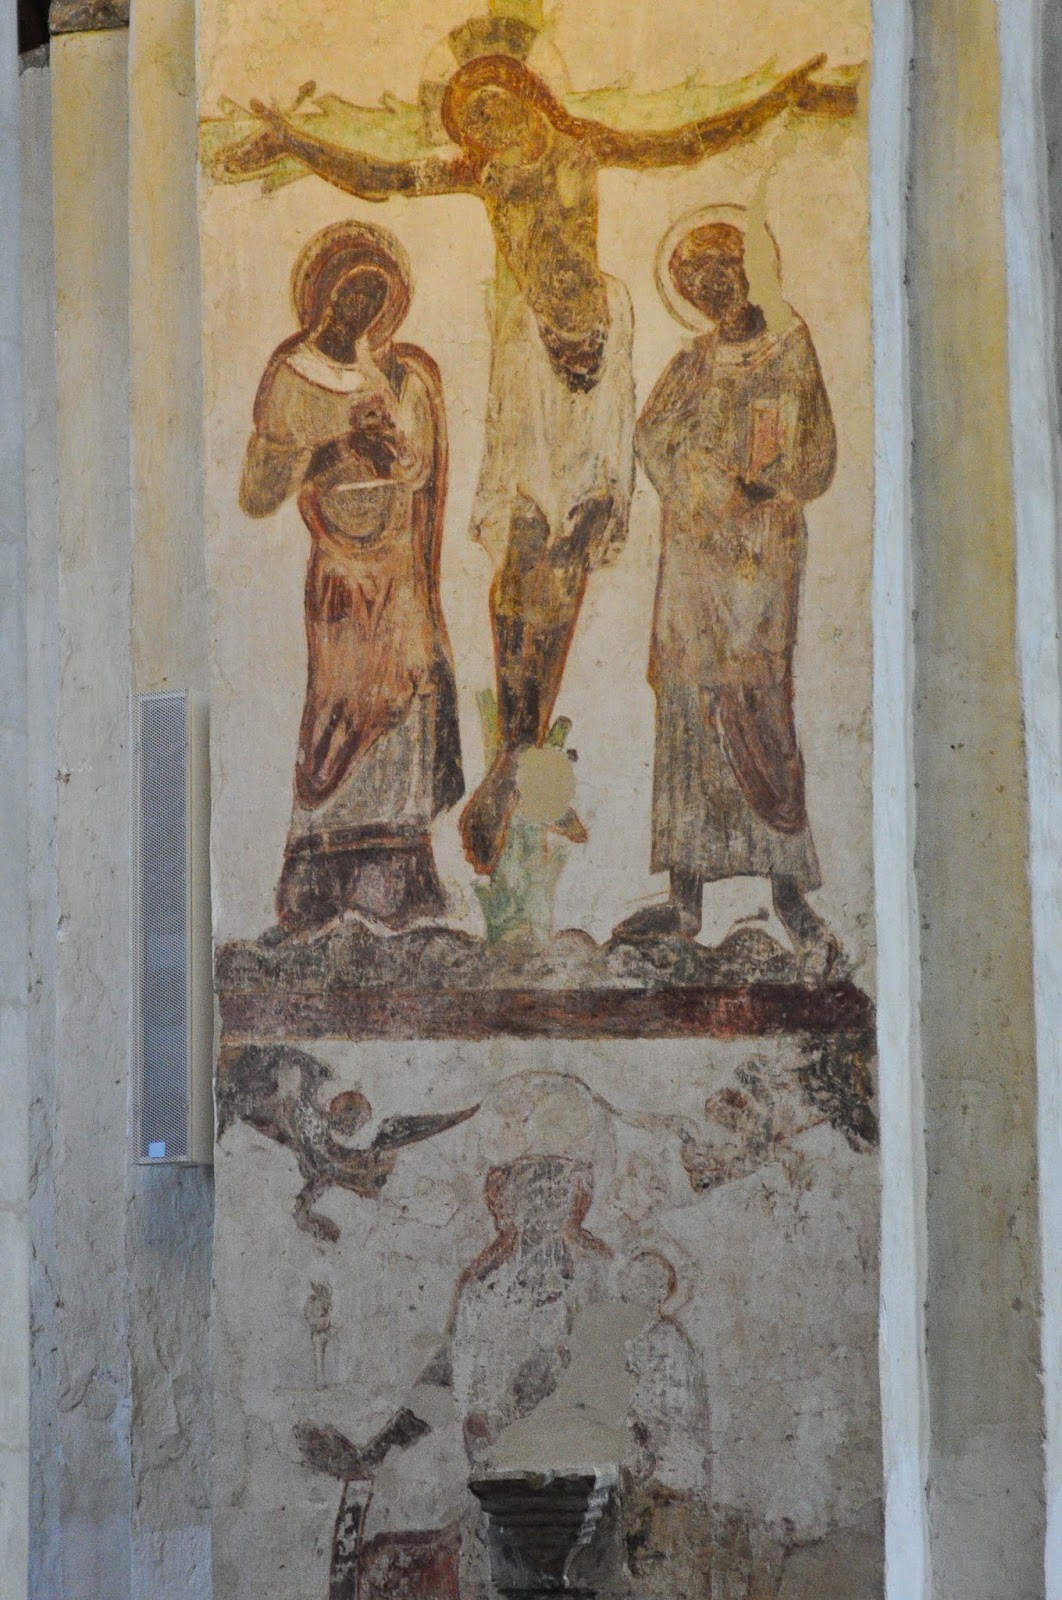 Vestiges of old frescoes, St. Albans Cathedral, St. Albans, Herts, England